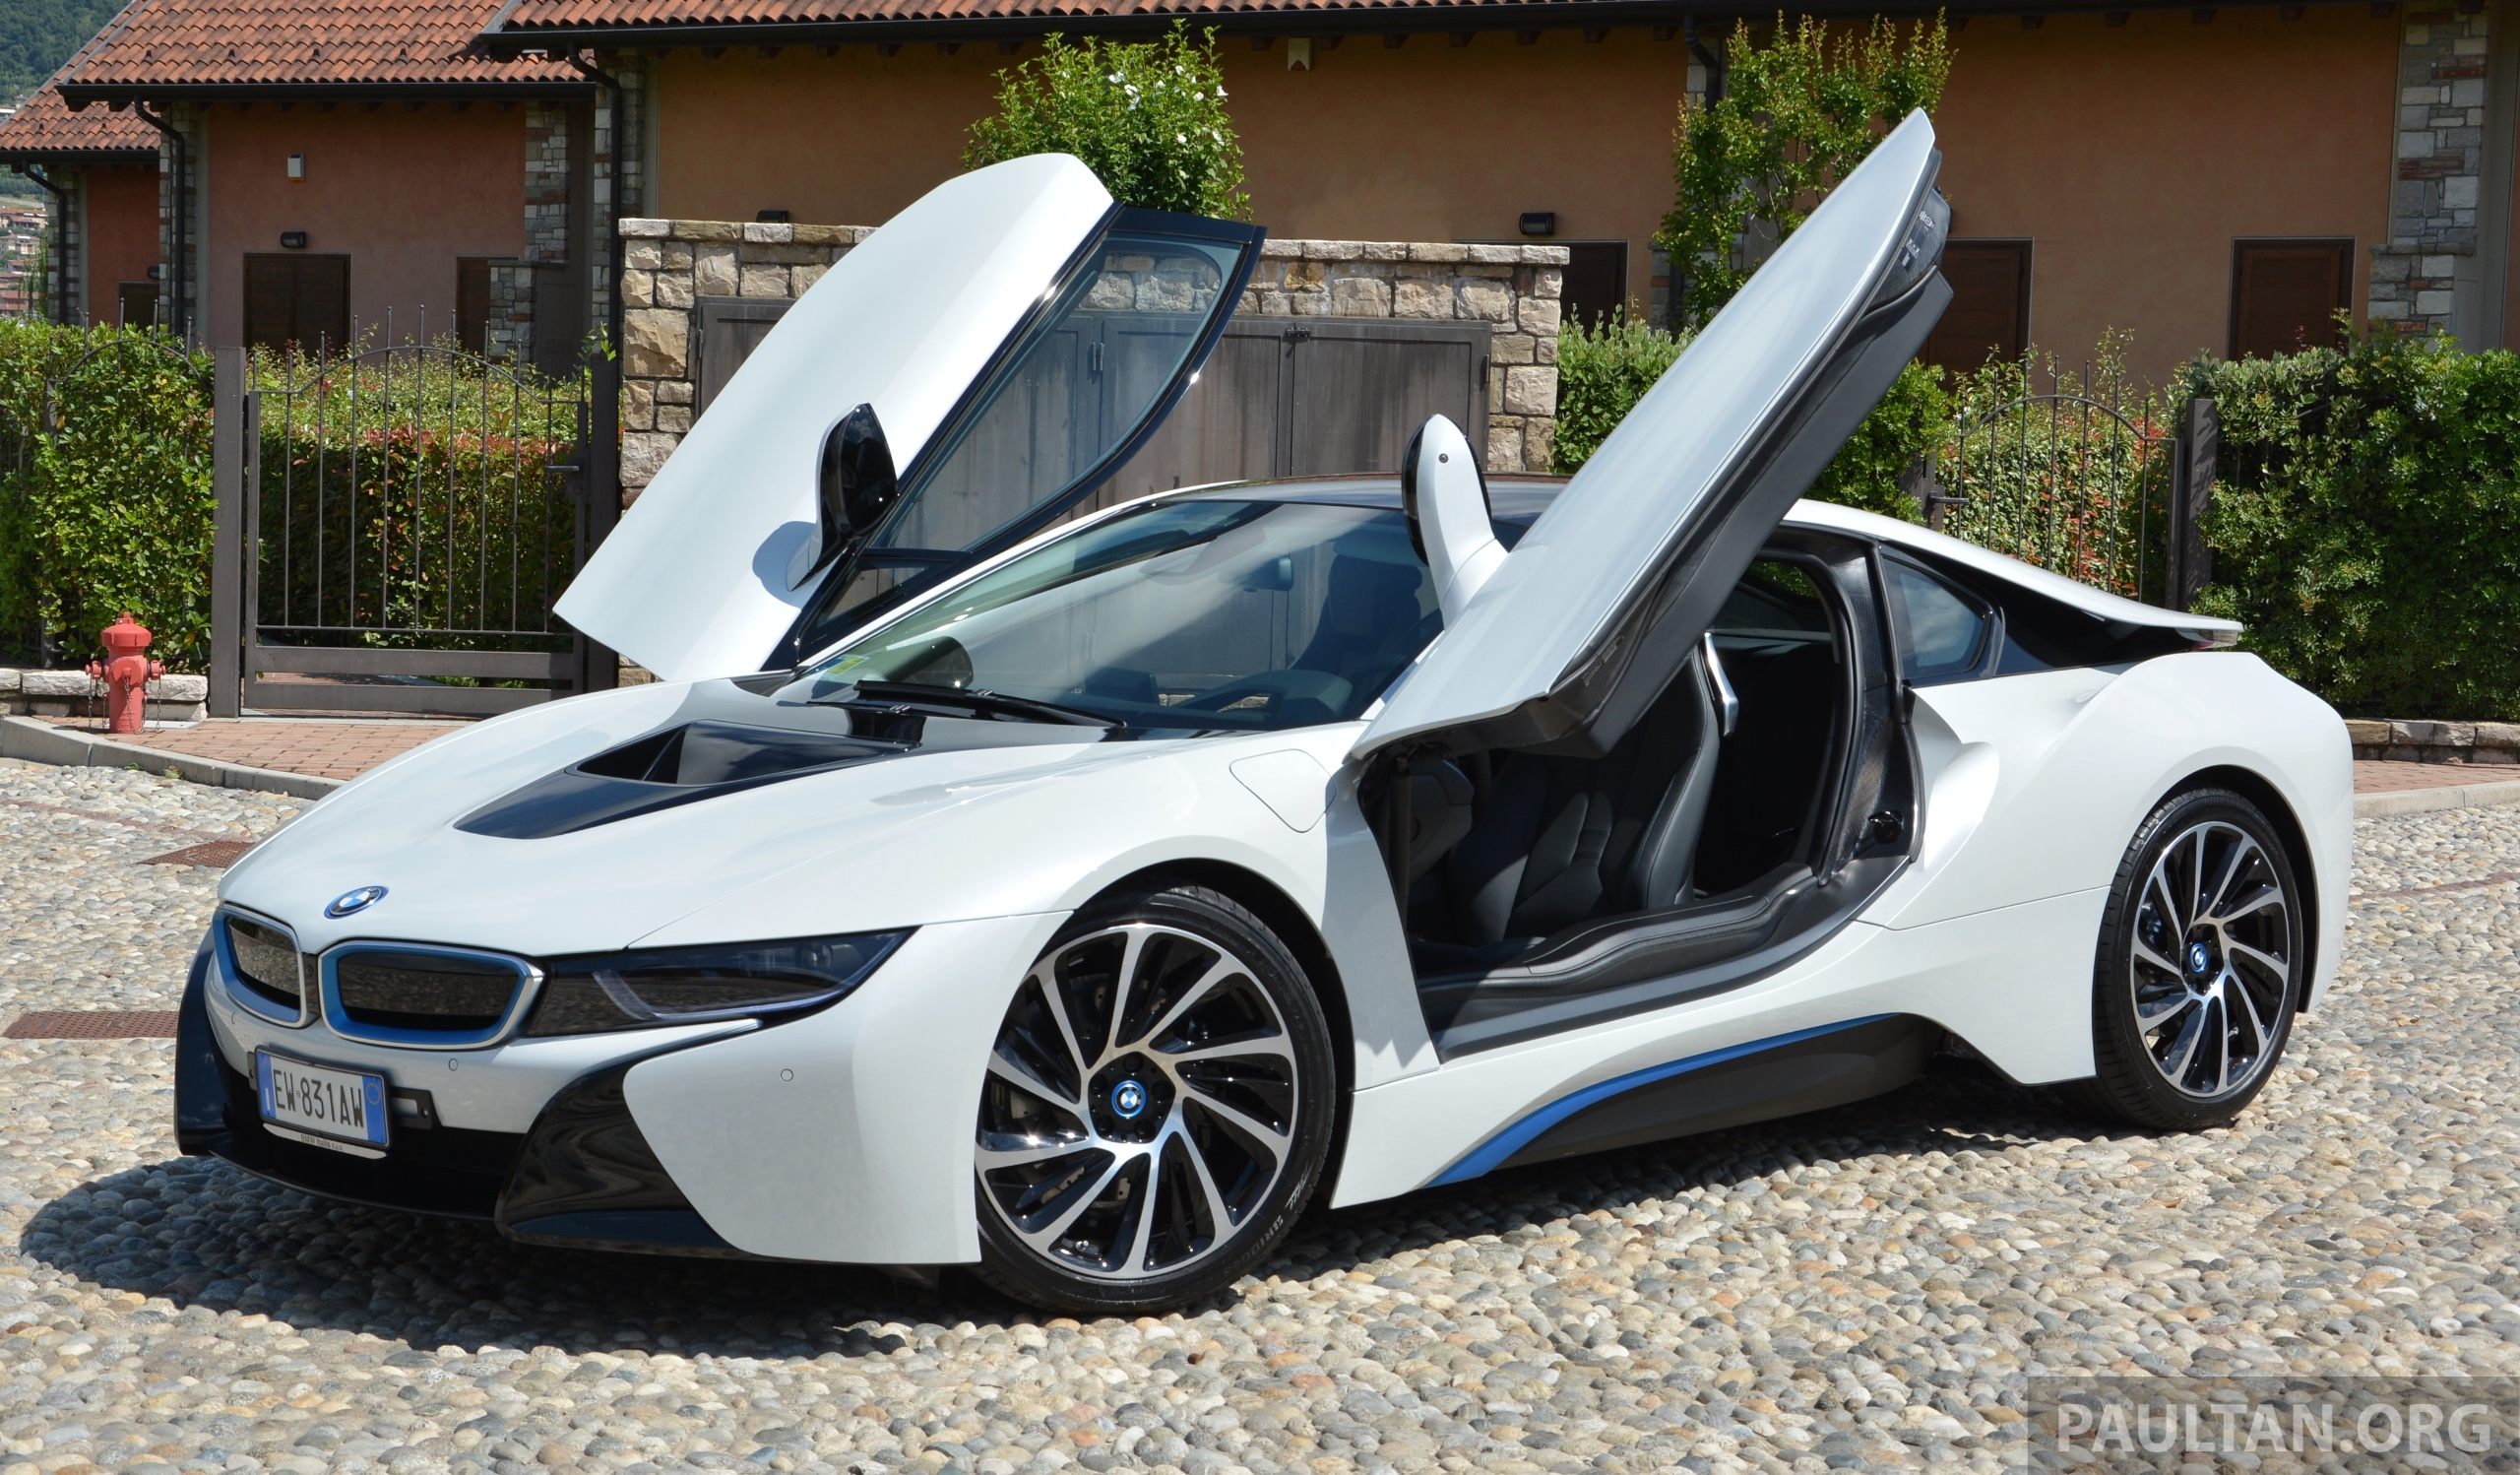 New Bmw I5 Rumoured To Sit Between I3 And I8 Models